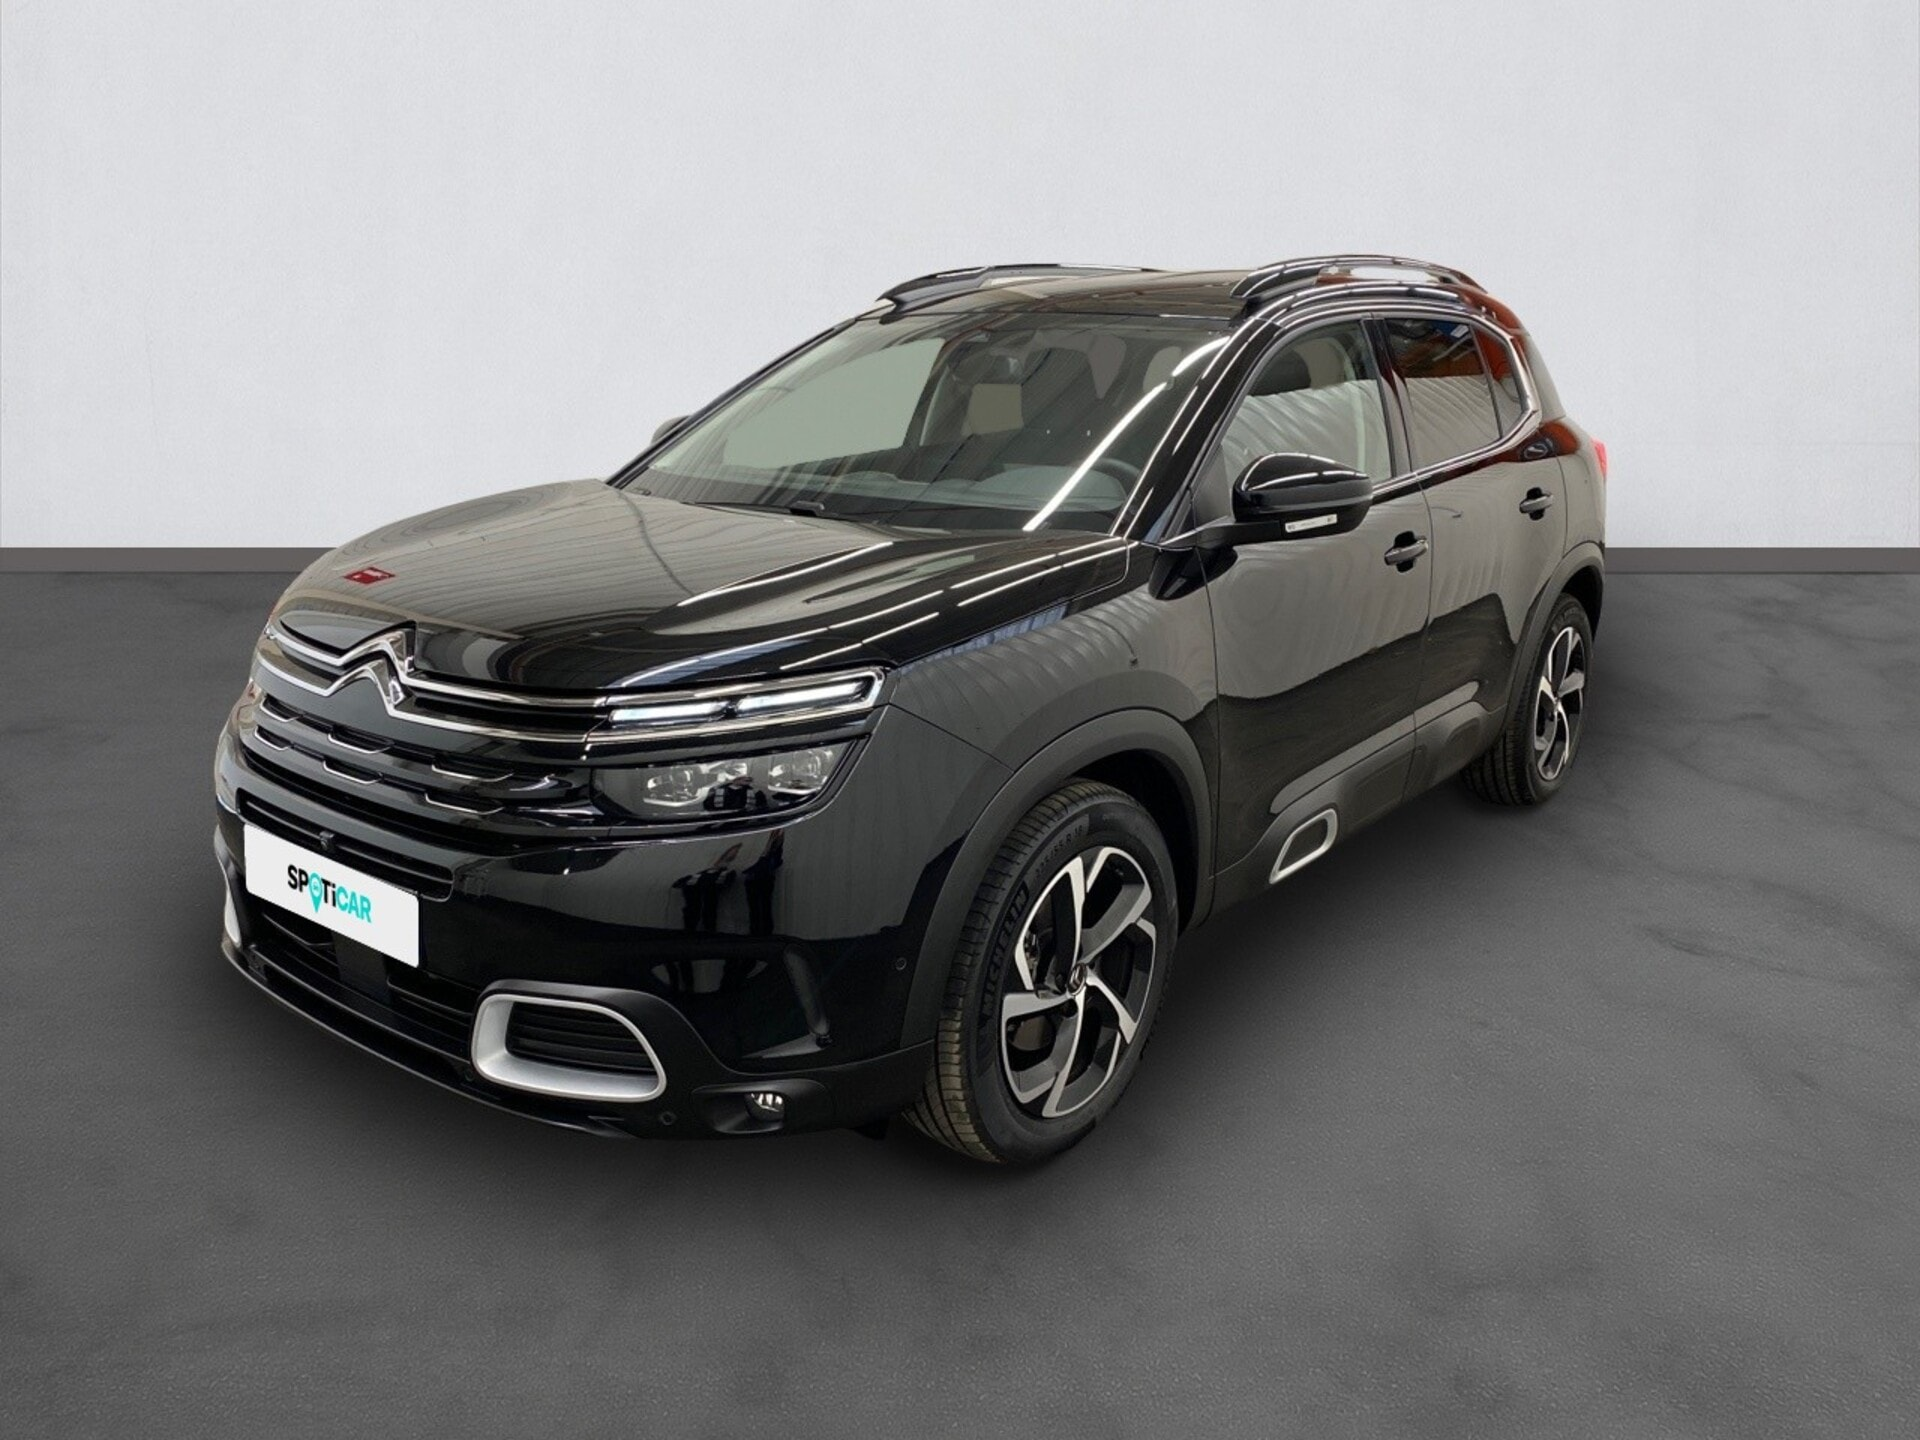 CITROEN C5 AIRCROSS PURETECH 180 S&S EAT8 SHINE - Carventura